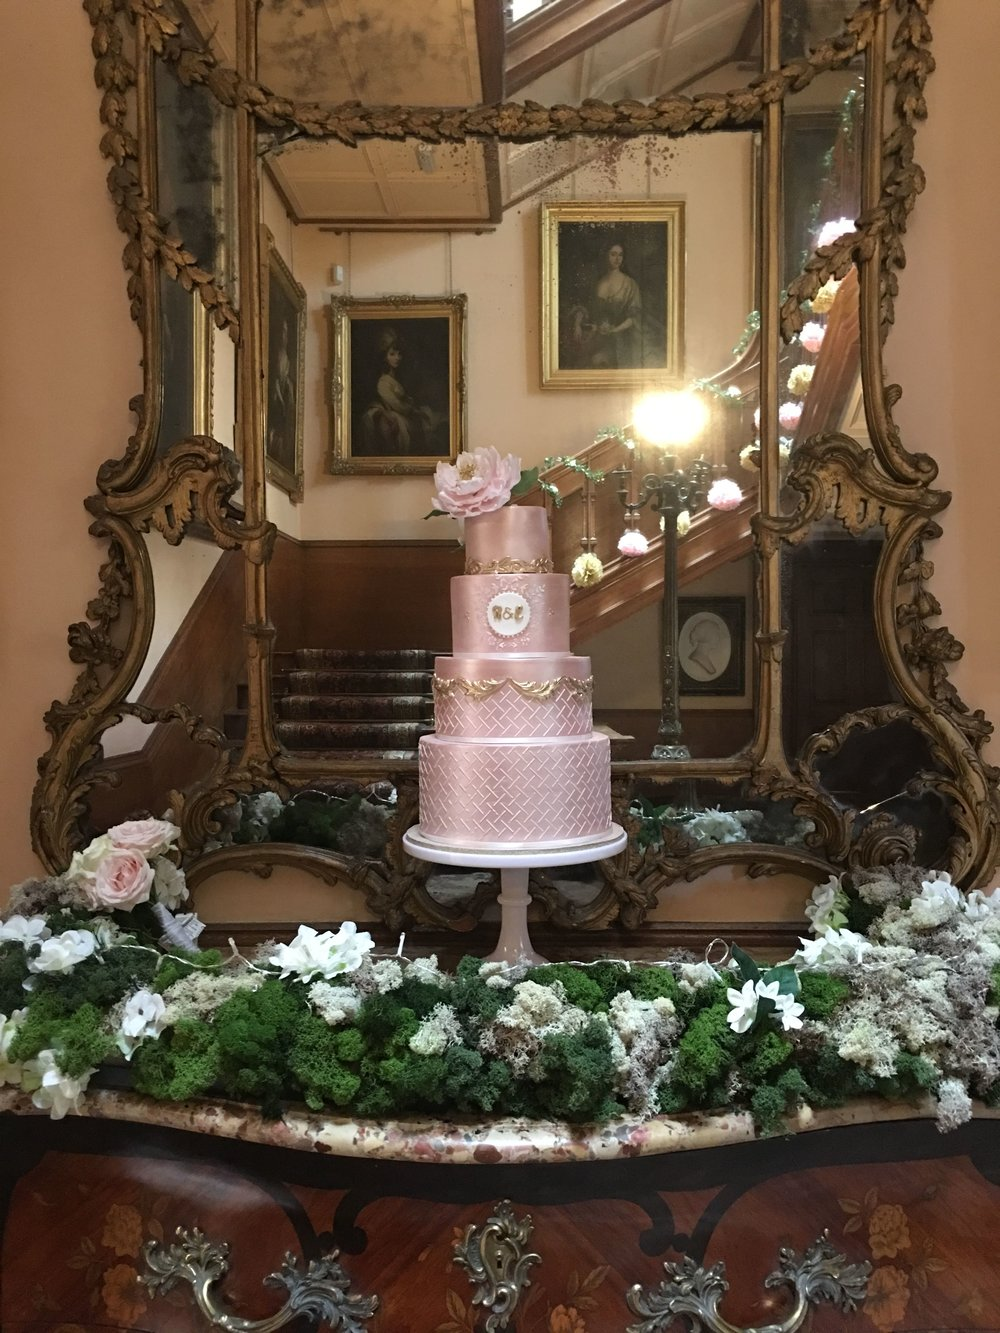 Some designs can only be achieved in fondant, like this rose gold wedding cake we set up at The House Shuttleworth last year.